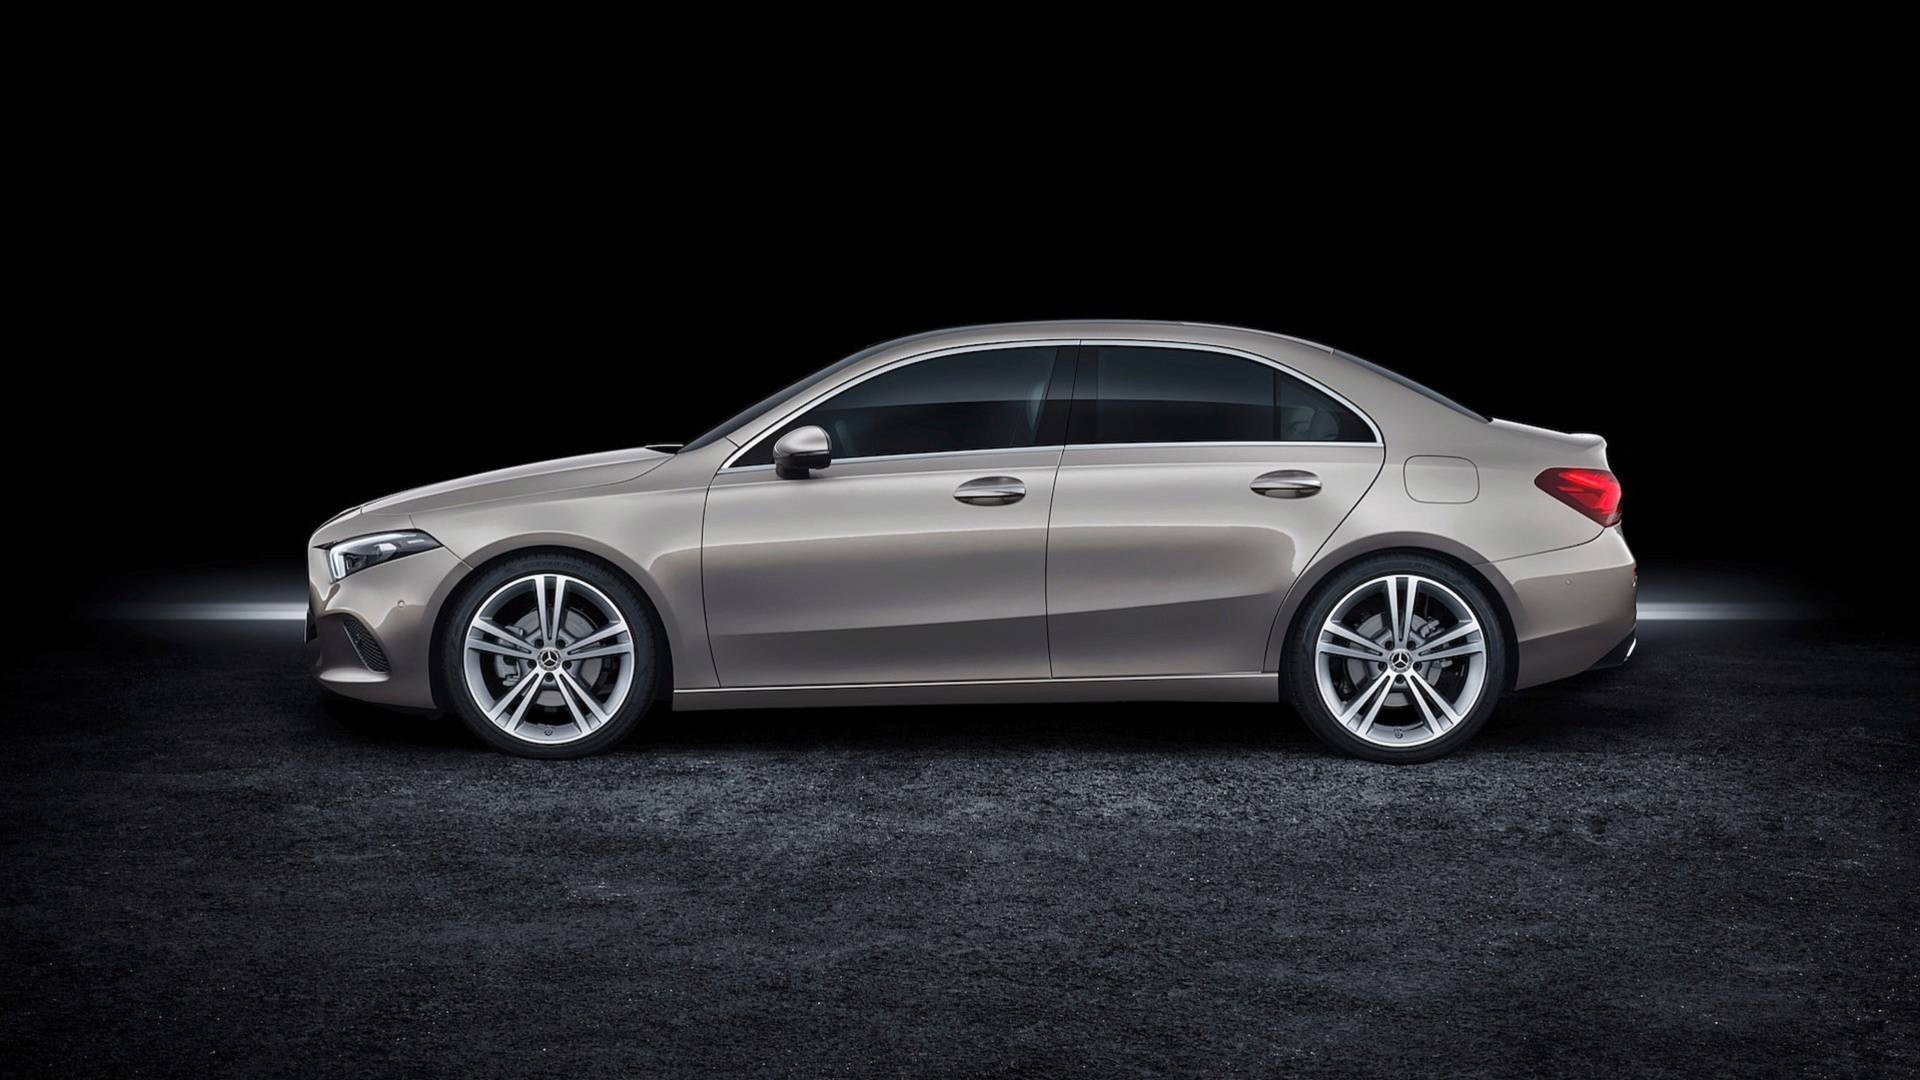 2019 mercedes benz a class sedan pricing starts at 30 900 eur autoevolution. Black Bedroom Furniture Sets. Home Design Ideas